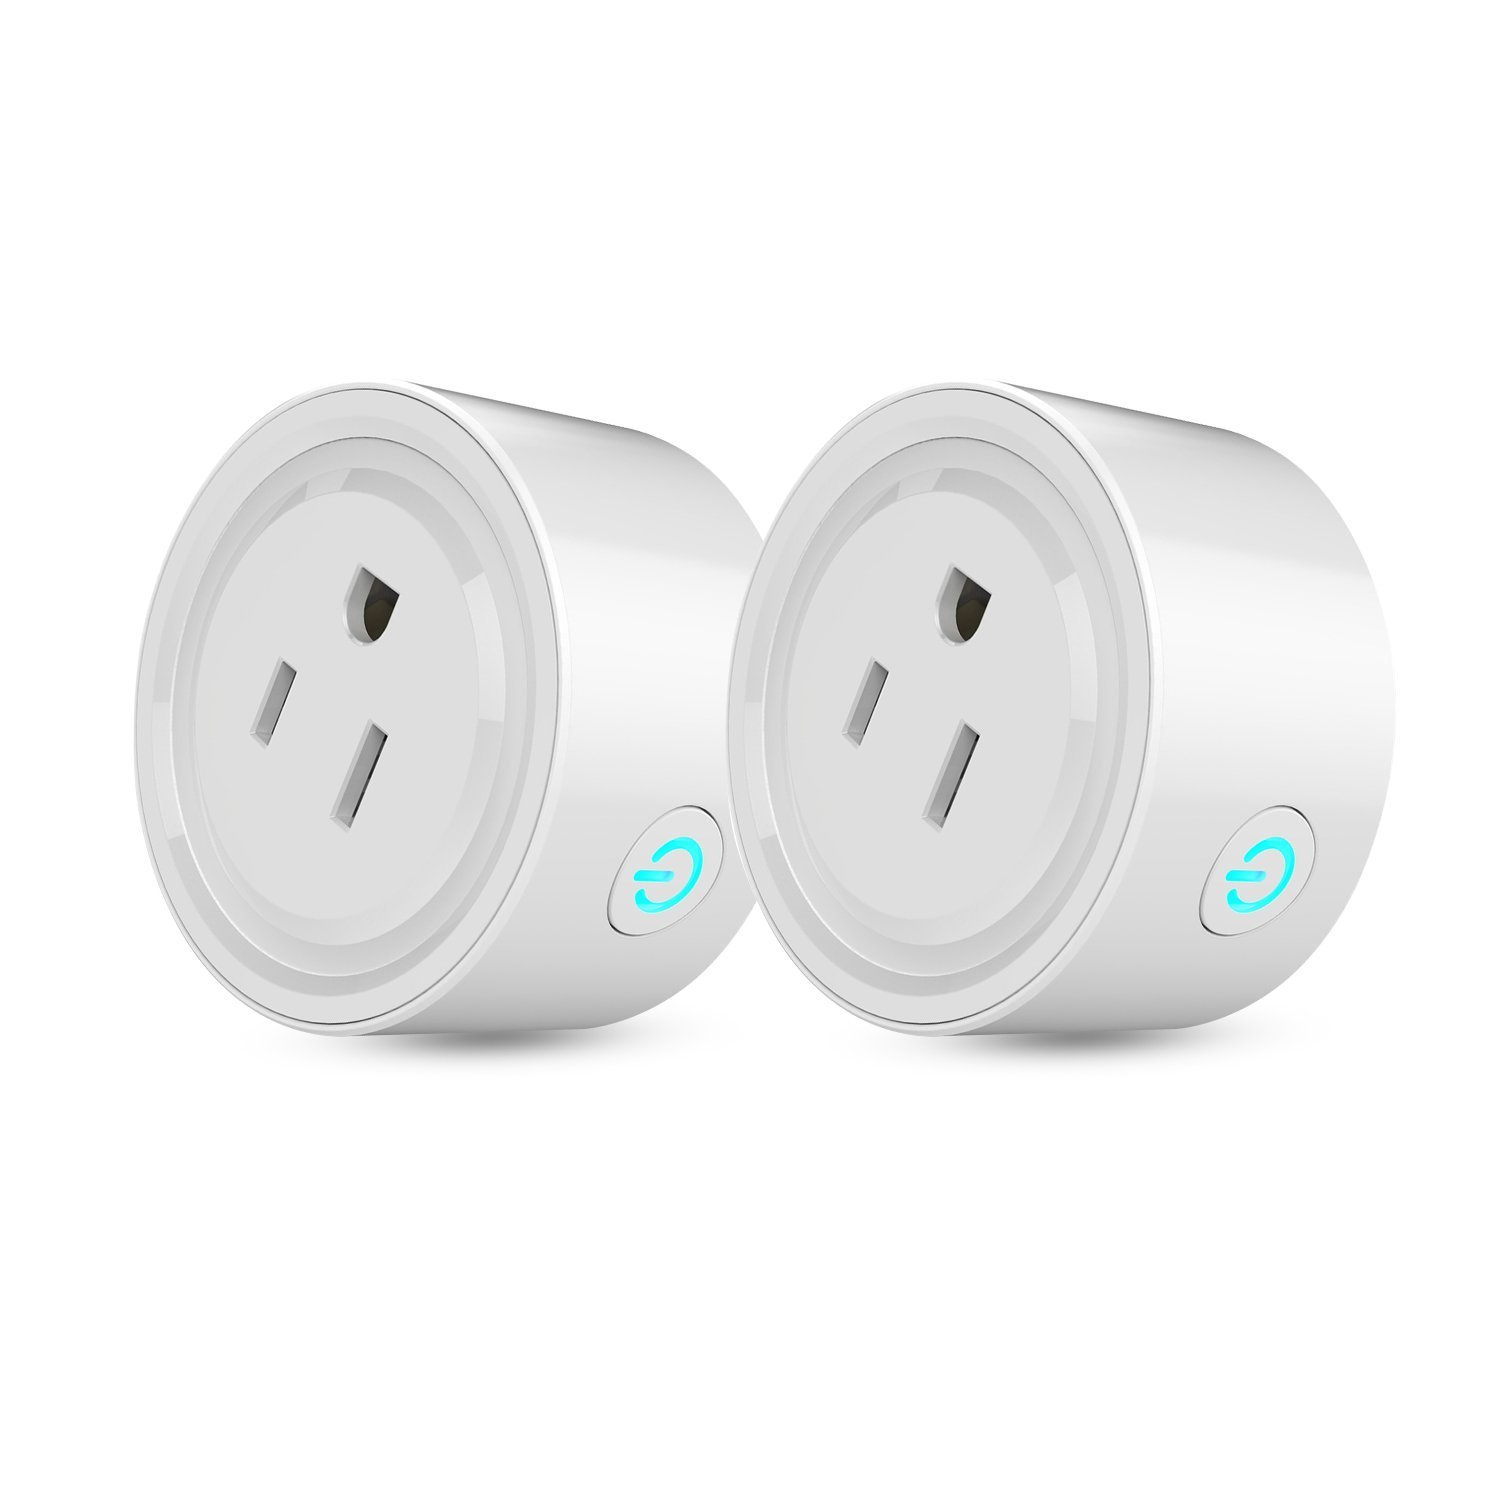 Smart Plug Wi-Fi Mini Socket Outlet Compatible with Alexa Wireless Control Your Devices from Anywhere, ETL Certificated Timing Function For Smart Phone Voice Control for Home Appliances (2 pack)